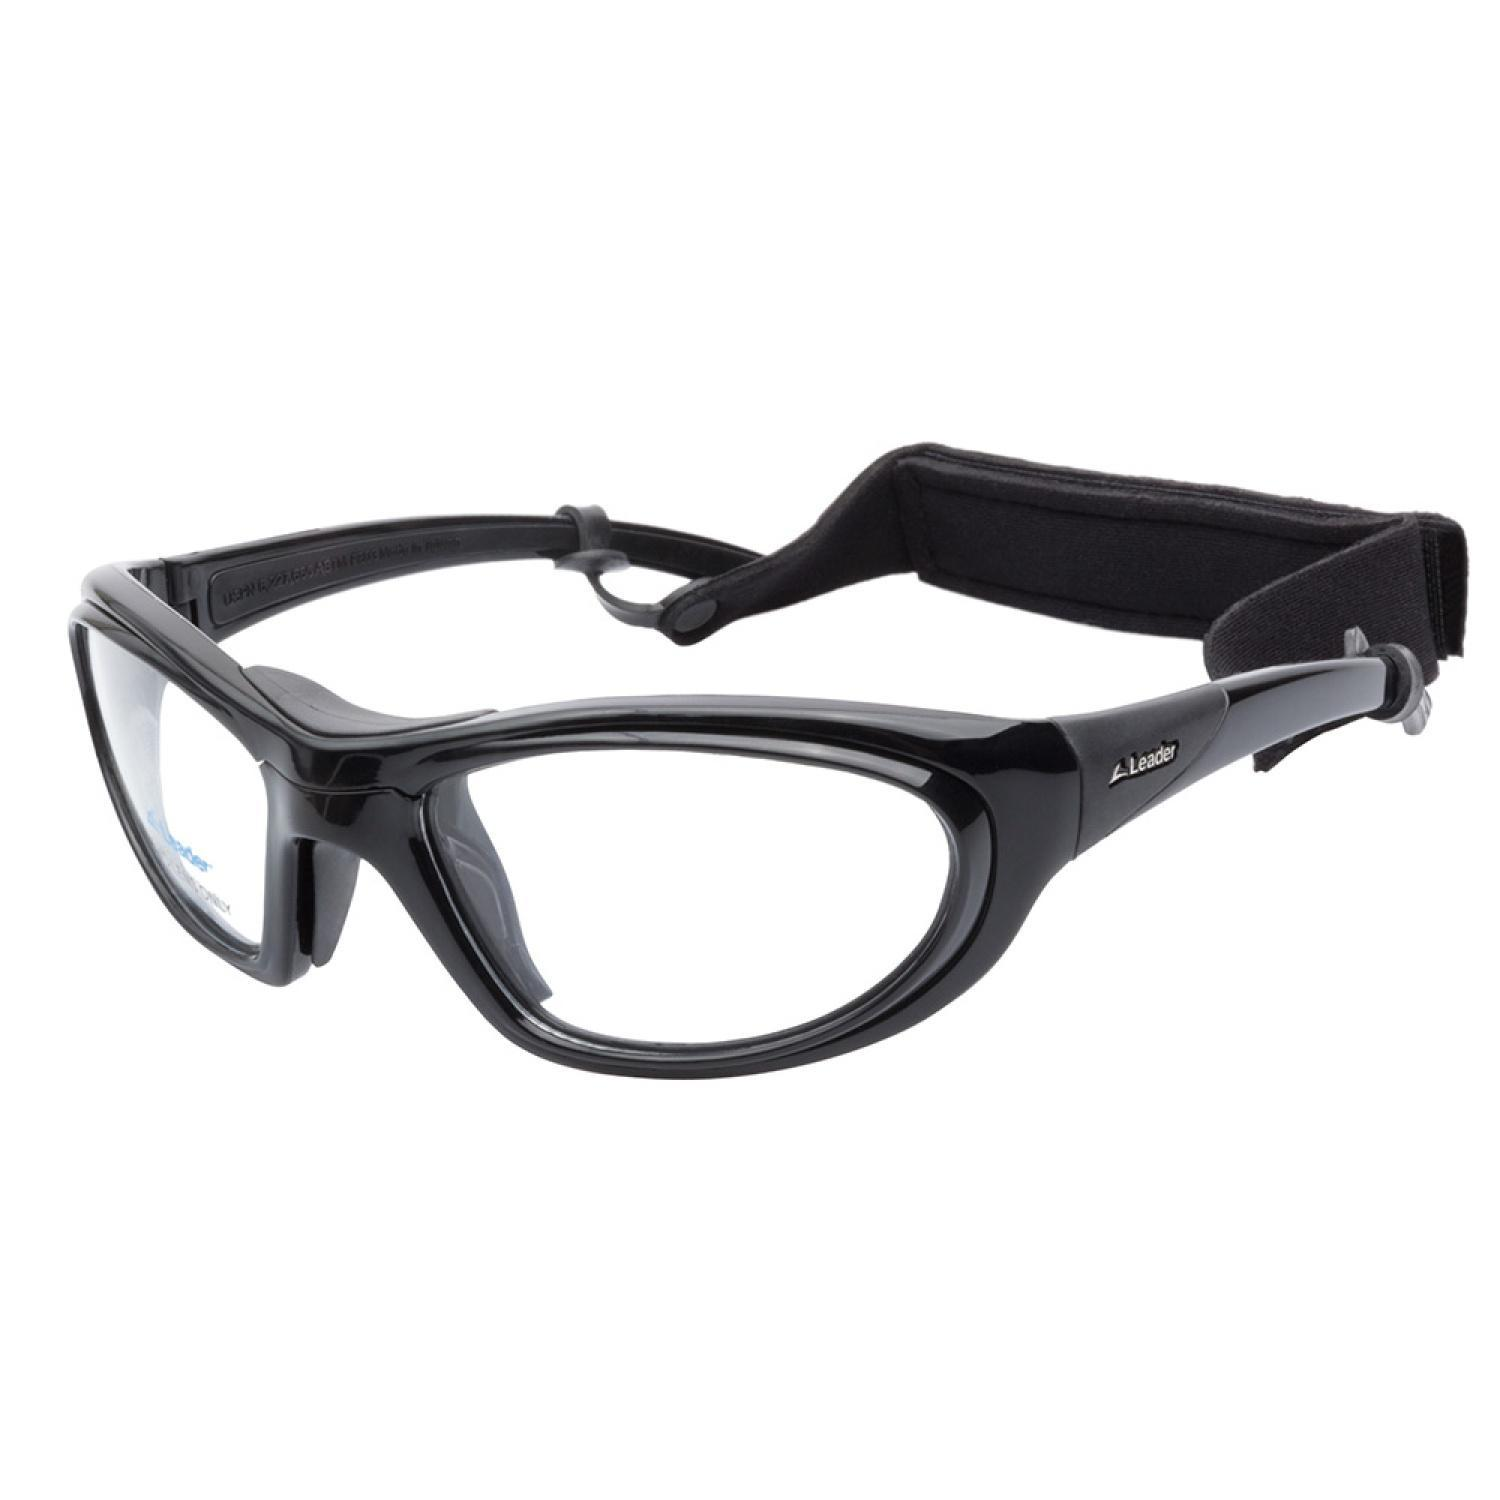 cfe39f78f0 Shop Rx T-Zone XL Sports Goggles Black Prescription Eyeglasses - Free  Shipping Today - Overstock.com - 9350096